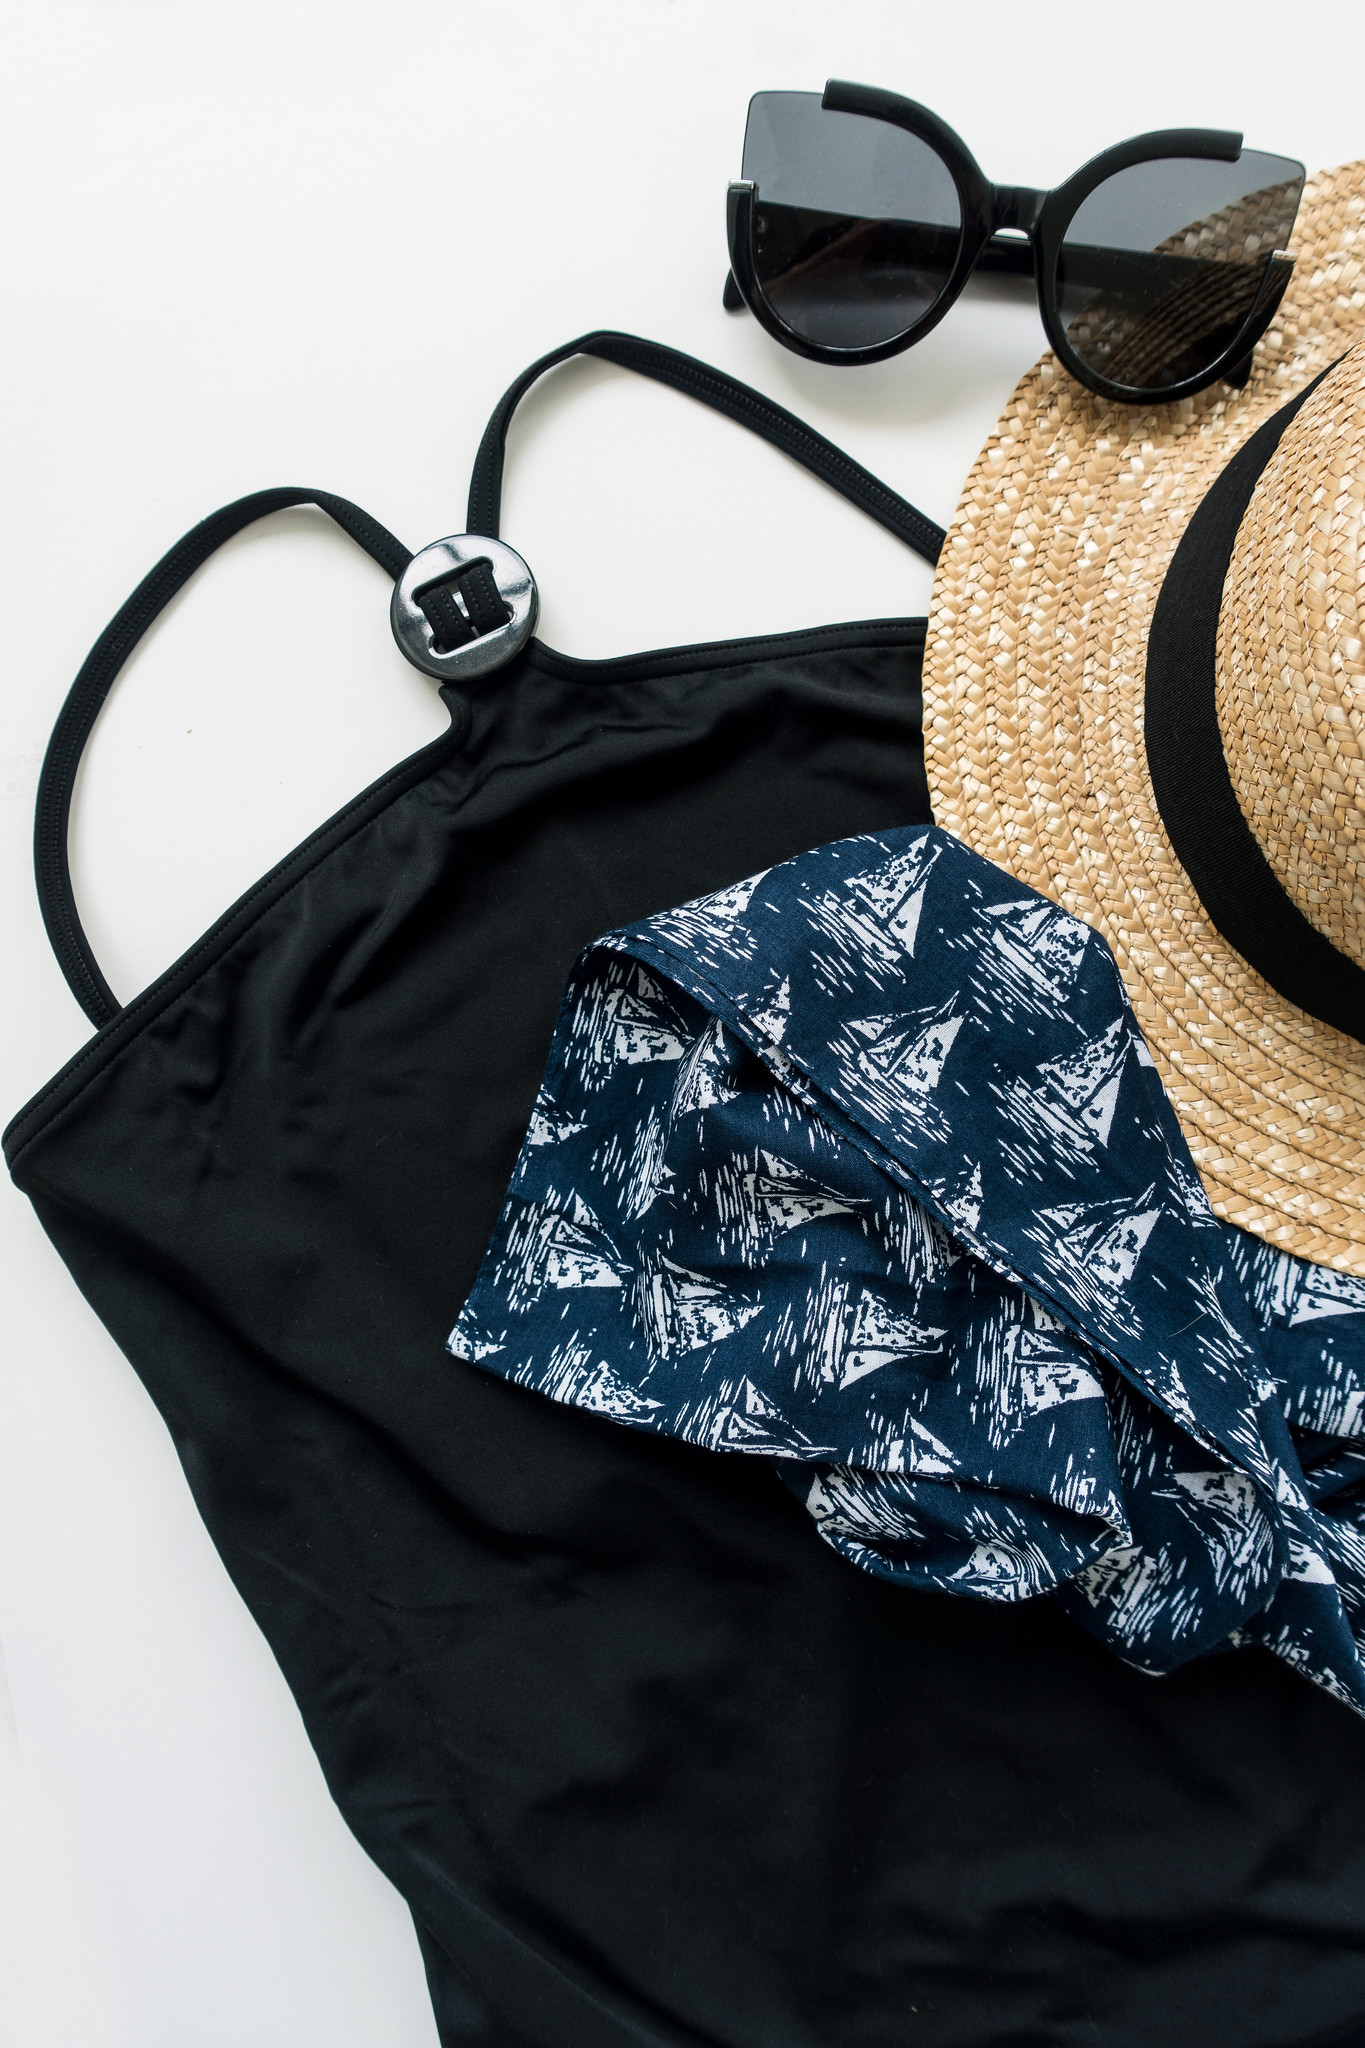 5 Things I've Added To My Summer Wardrobe